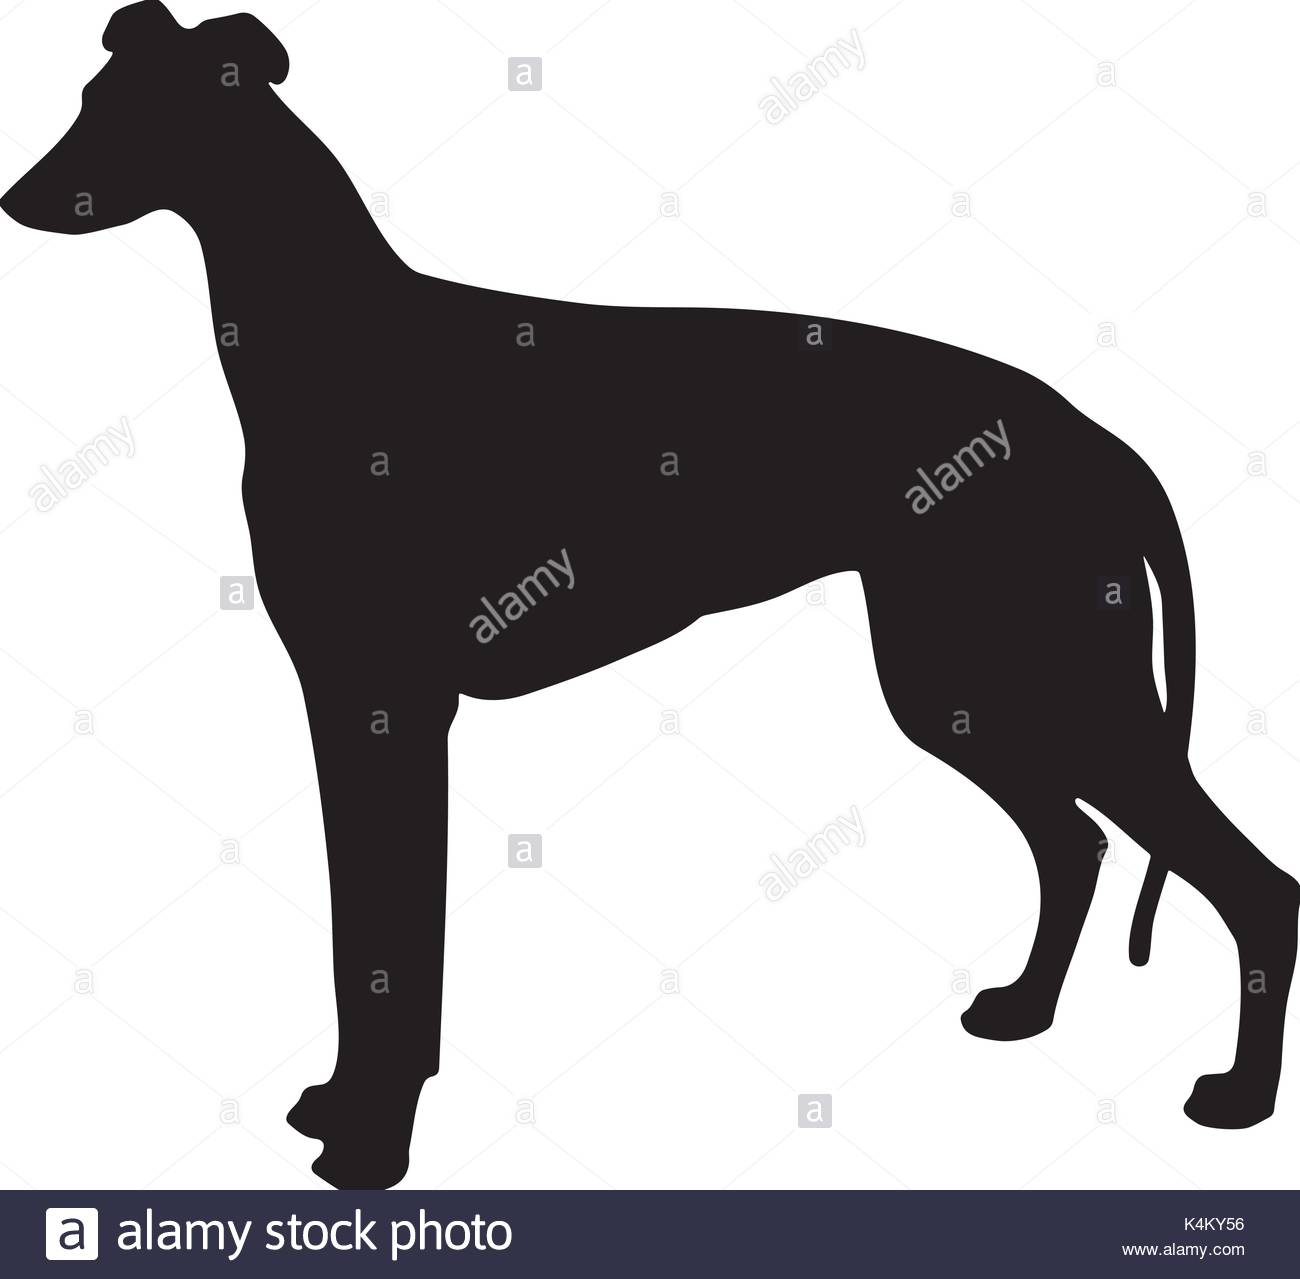 1300x1279 Greyhound Stock Vector Images